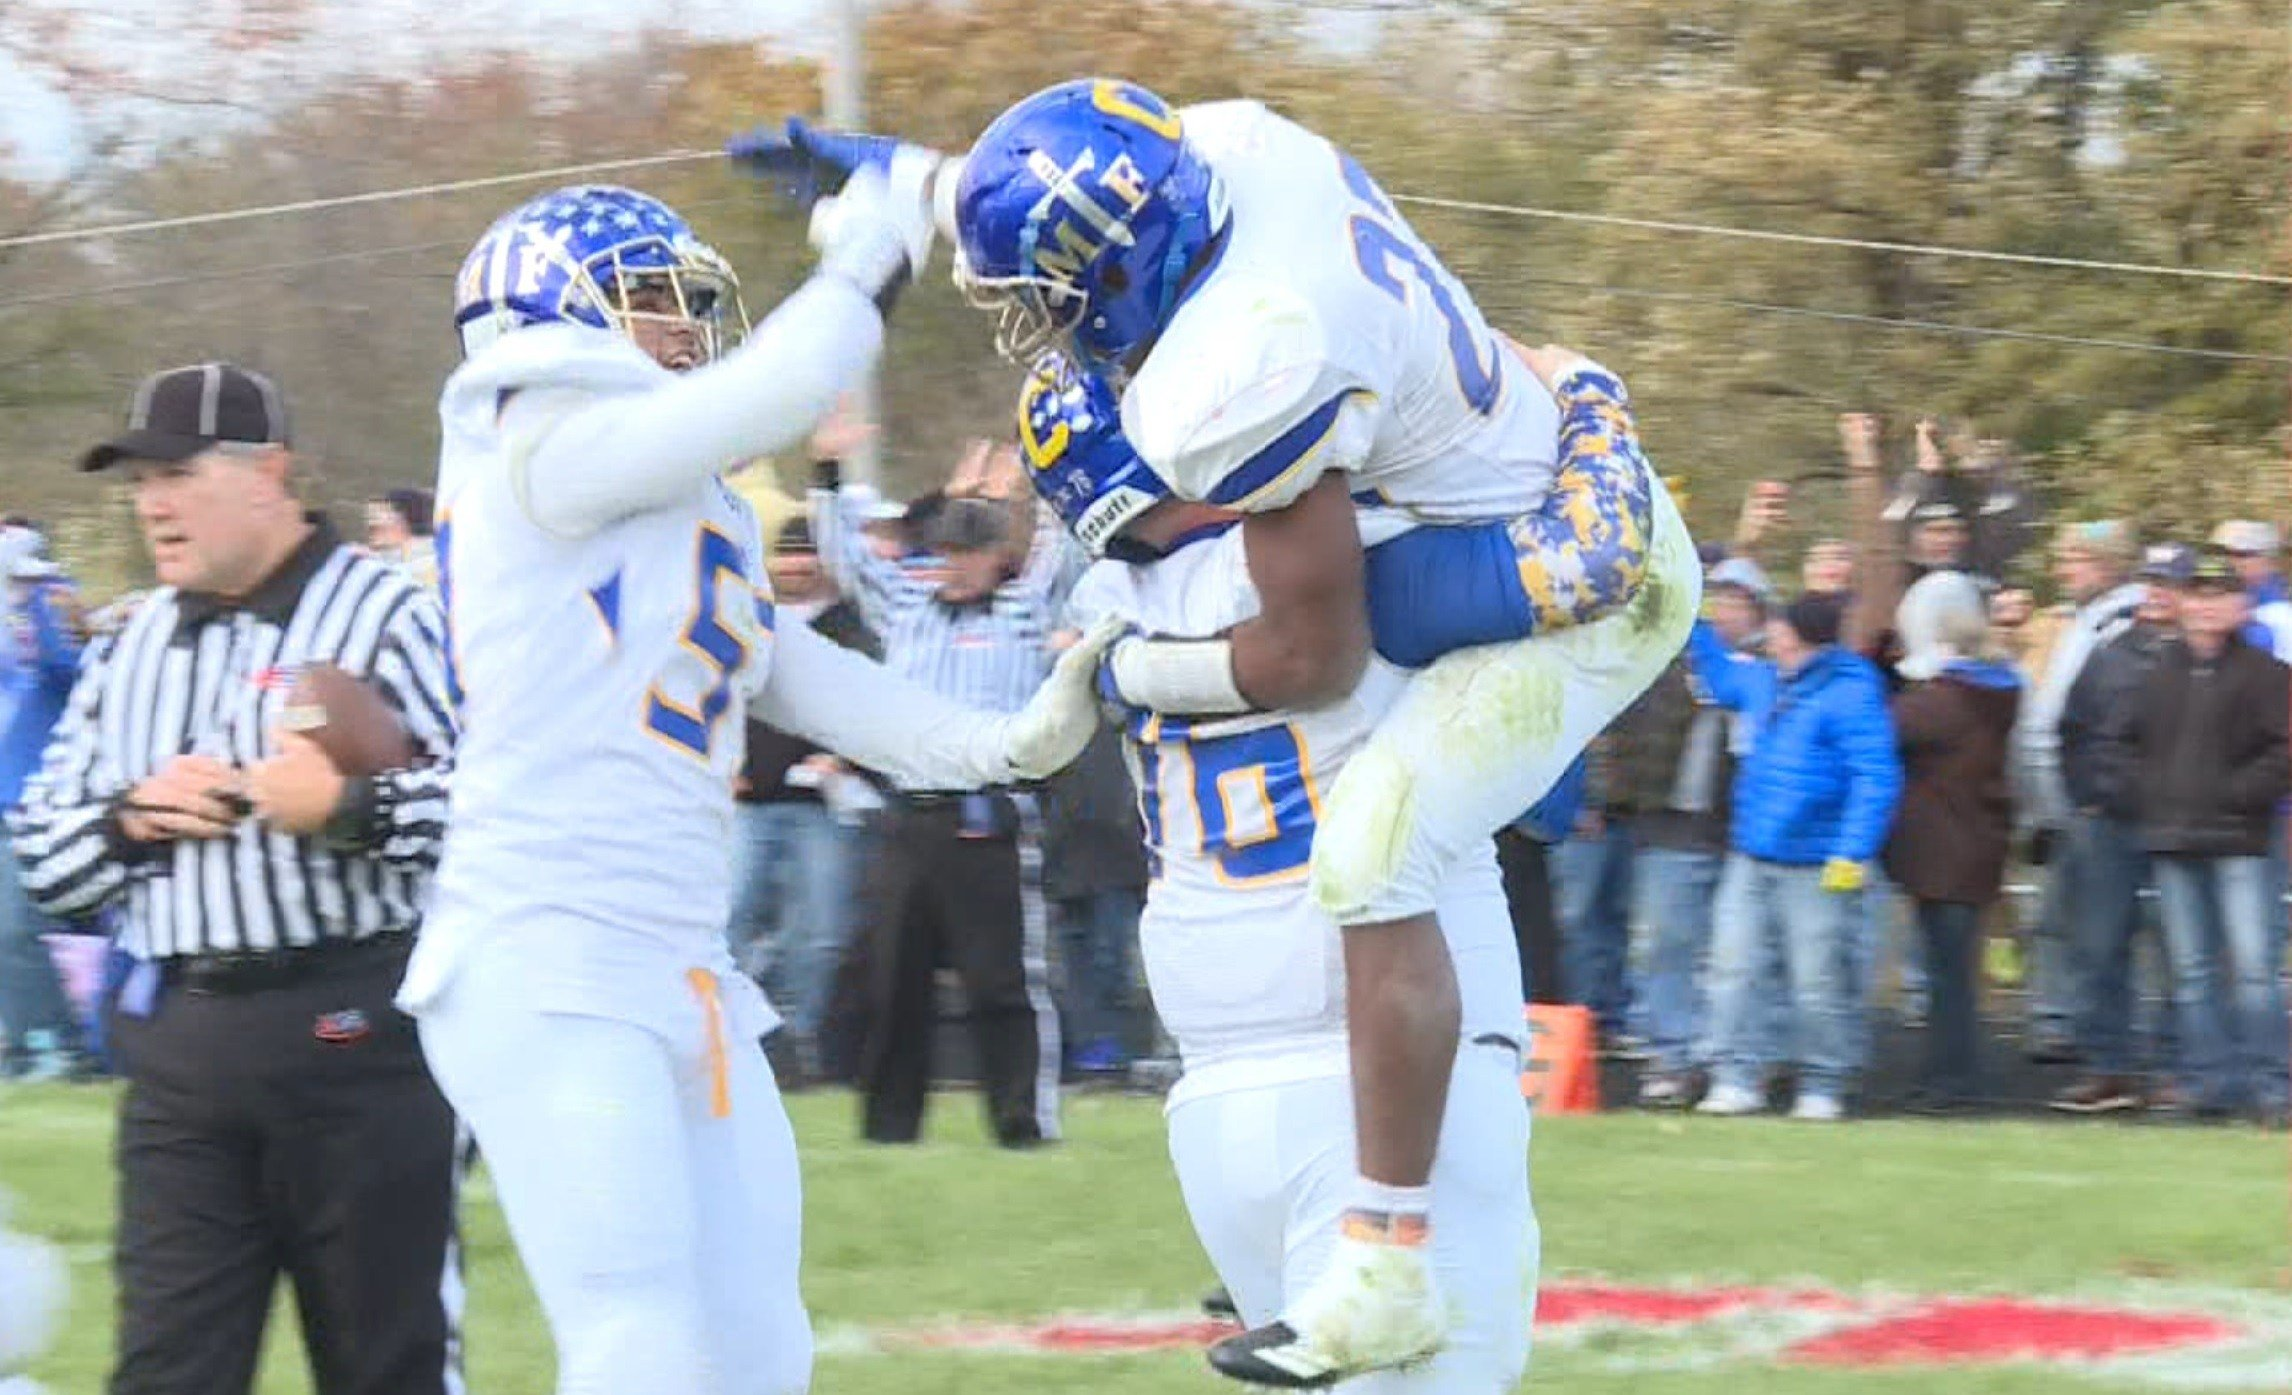 Deondre Gregory (right) and Maroa-Forsyth celebrate a come-from-behind 20-16 win over previously unbeaten West Hancock on Saturday in Hamilton.